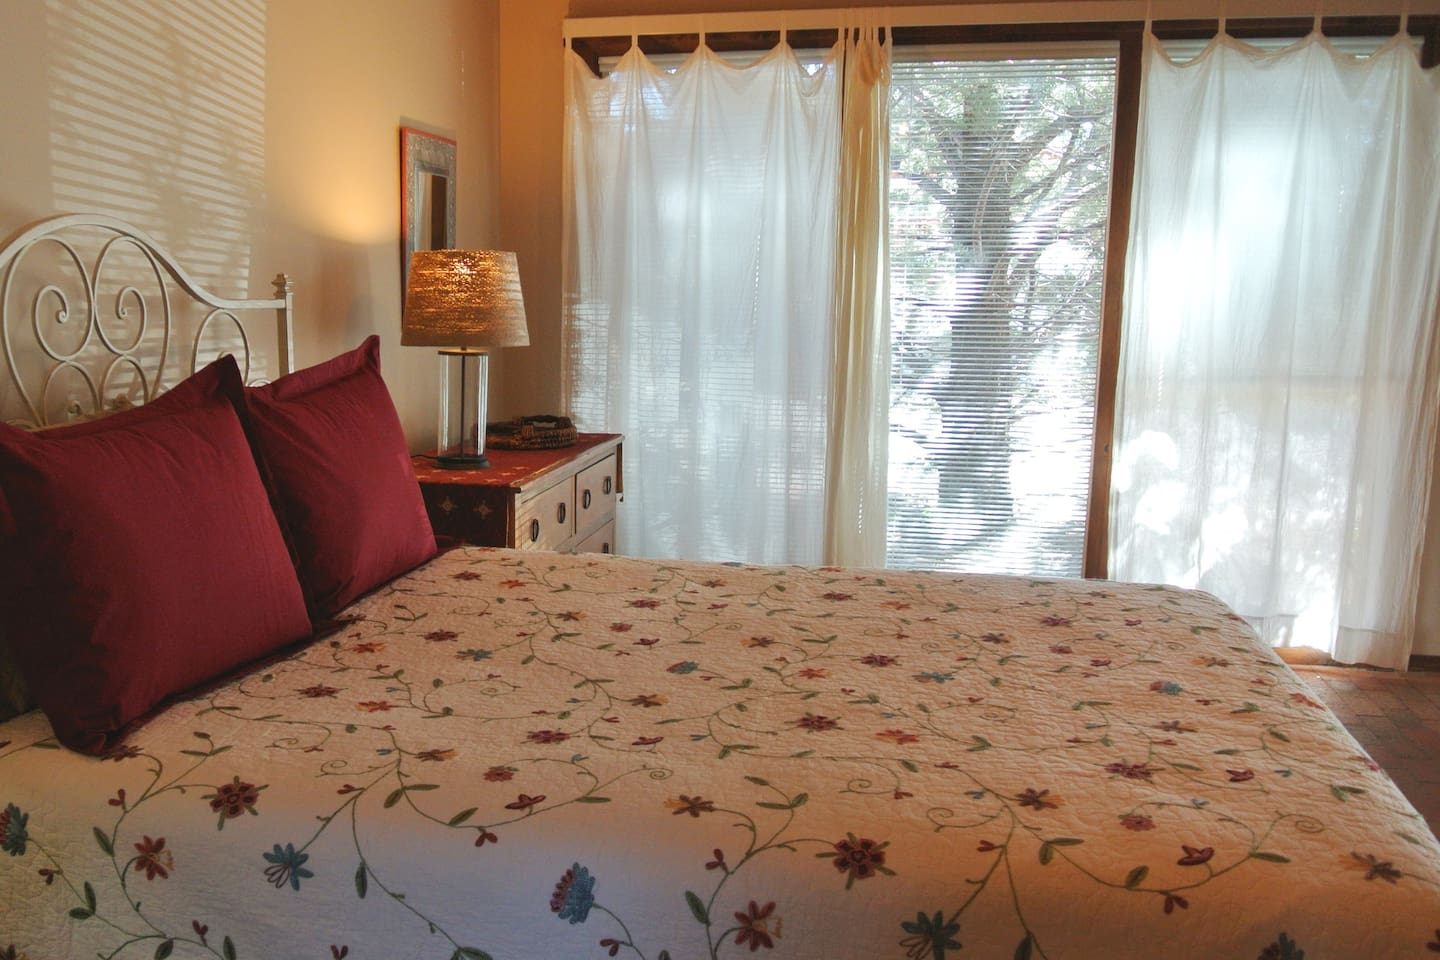 Comfortable, queen-size bed as well as extra pillows and comforters to support your restful sleep.